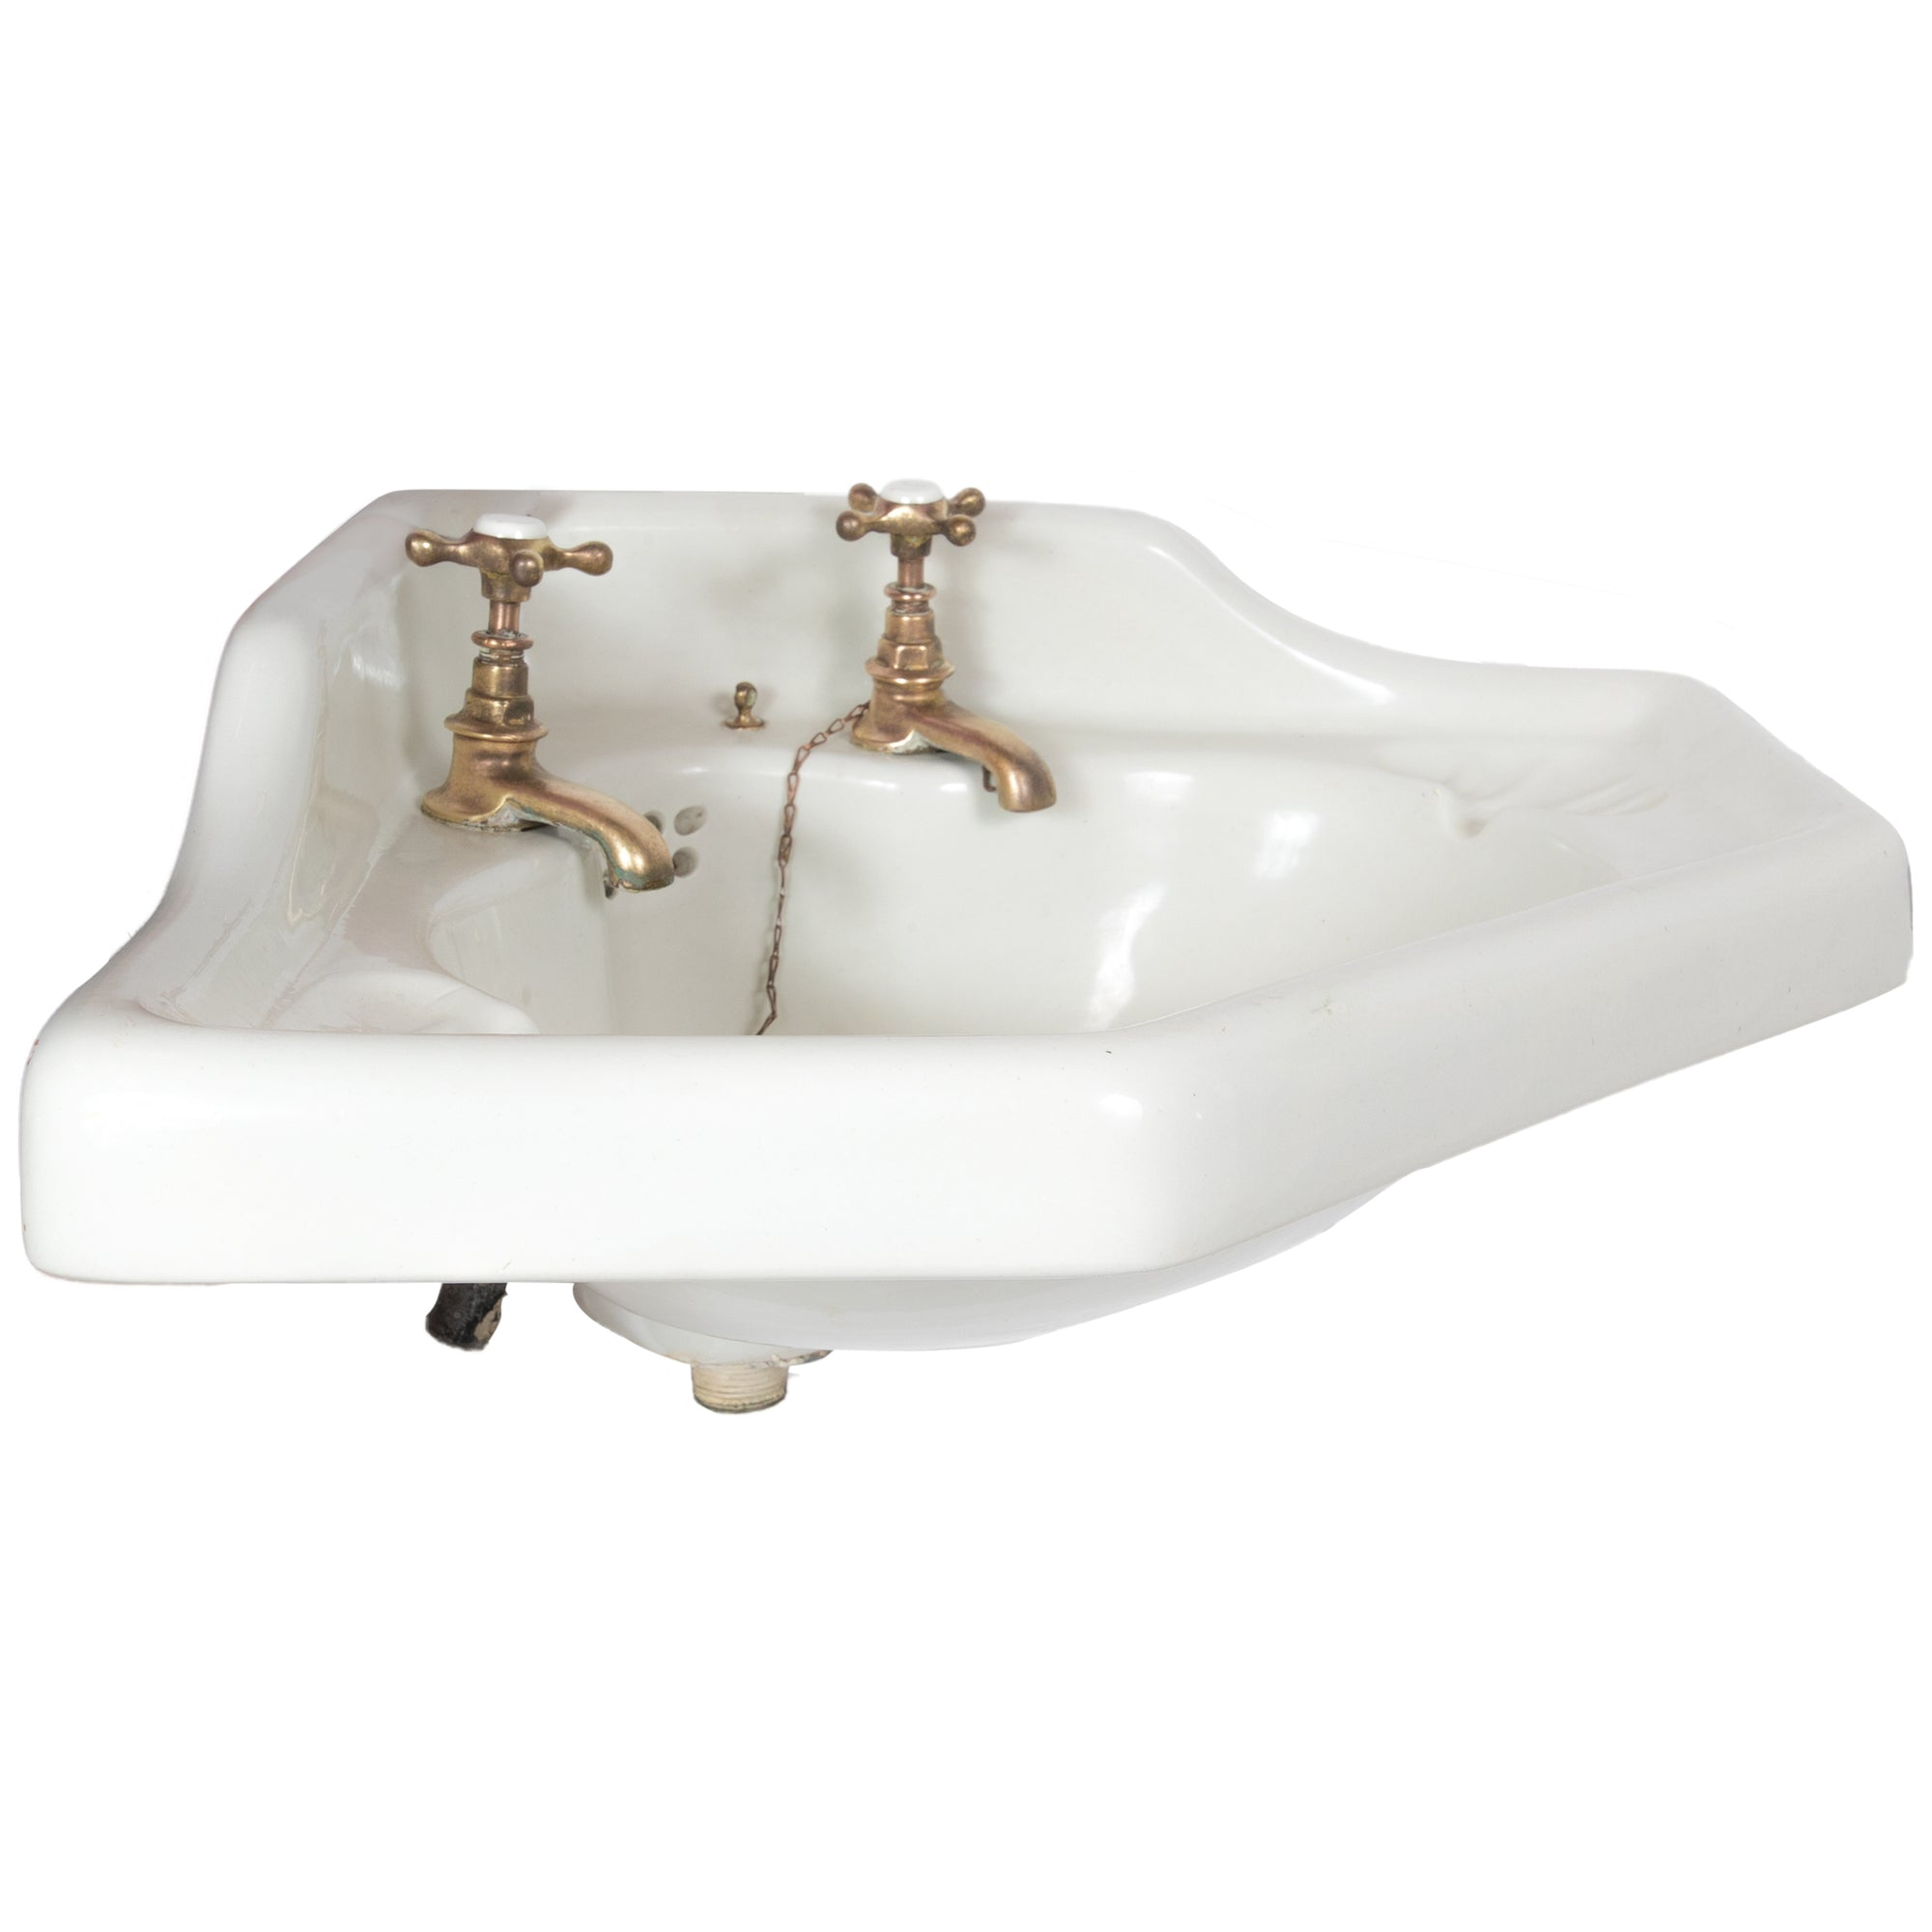 Antique Victorian Corner Sink